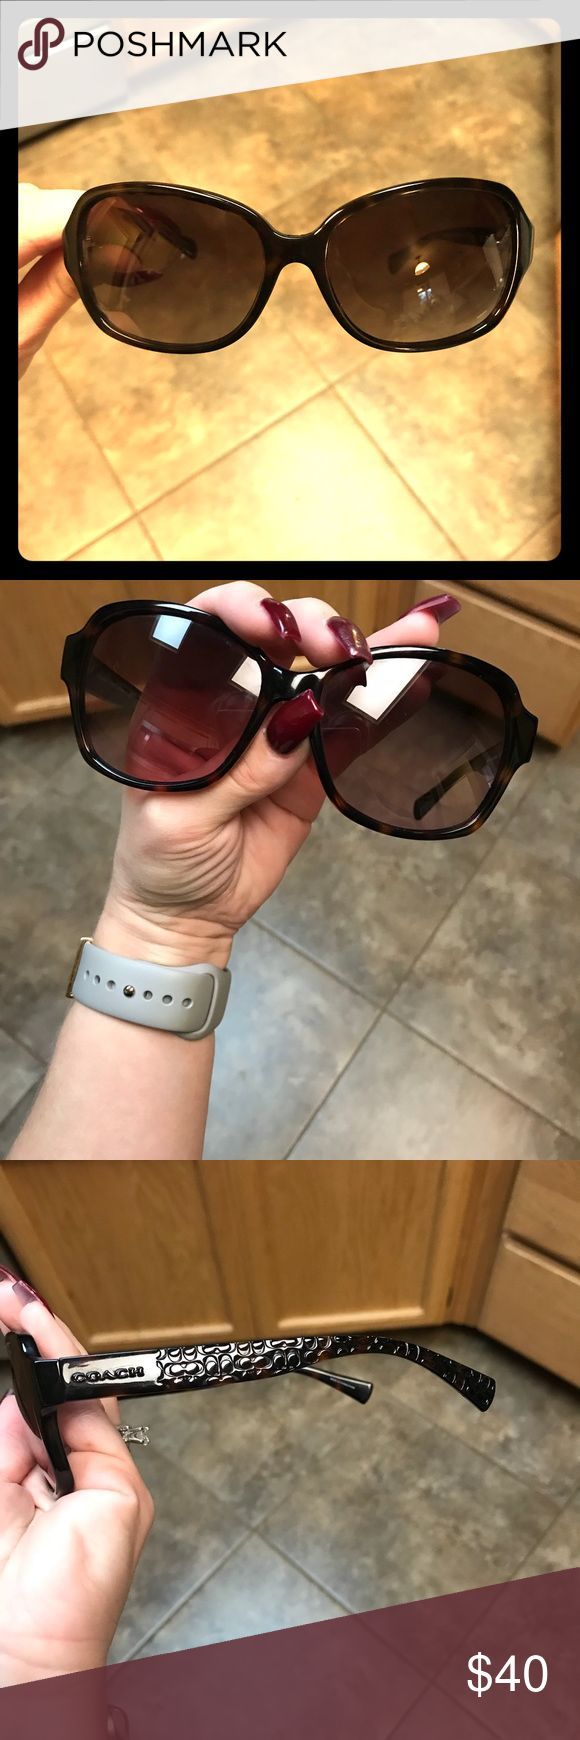 Coach tortoise sunglasses w/ case. Very cute brown/black tortoise COACH sunglasses. A couple tiny scuffs on lens but doesn't impair vision. Includes black COACH case. Coach Accessories Sunglasses